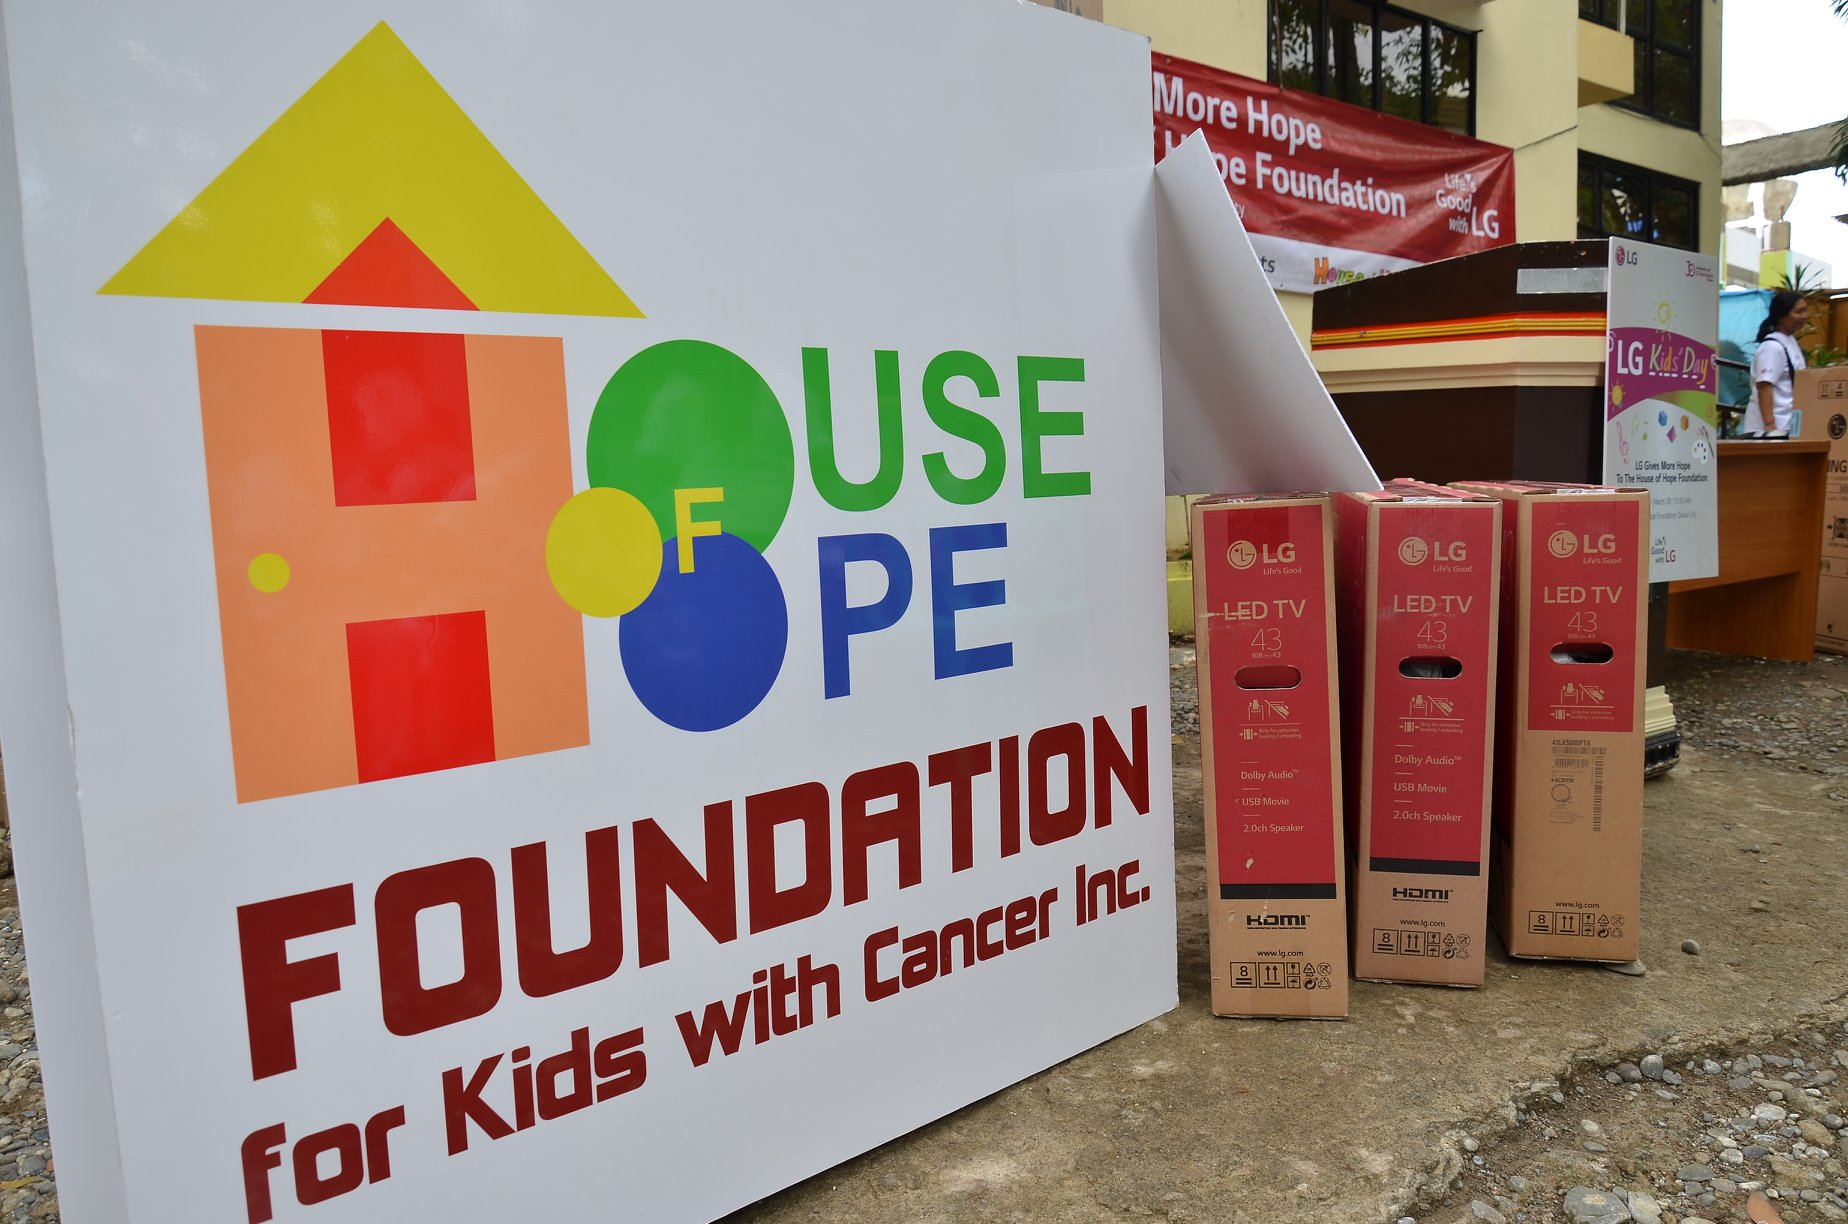 LG Kids Day at House of Hope Donation